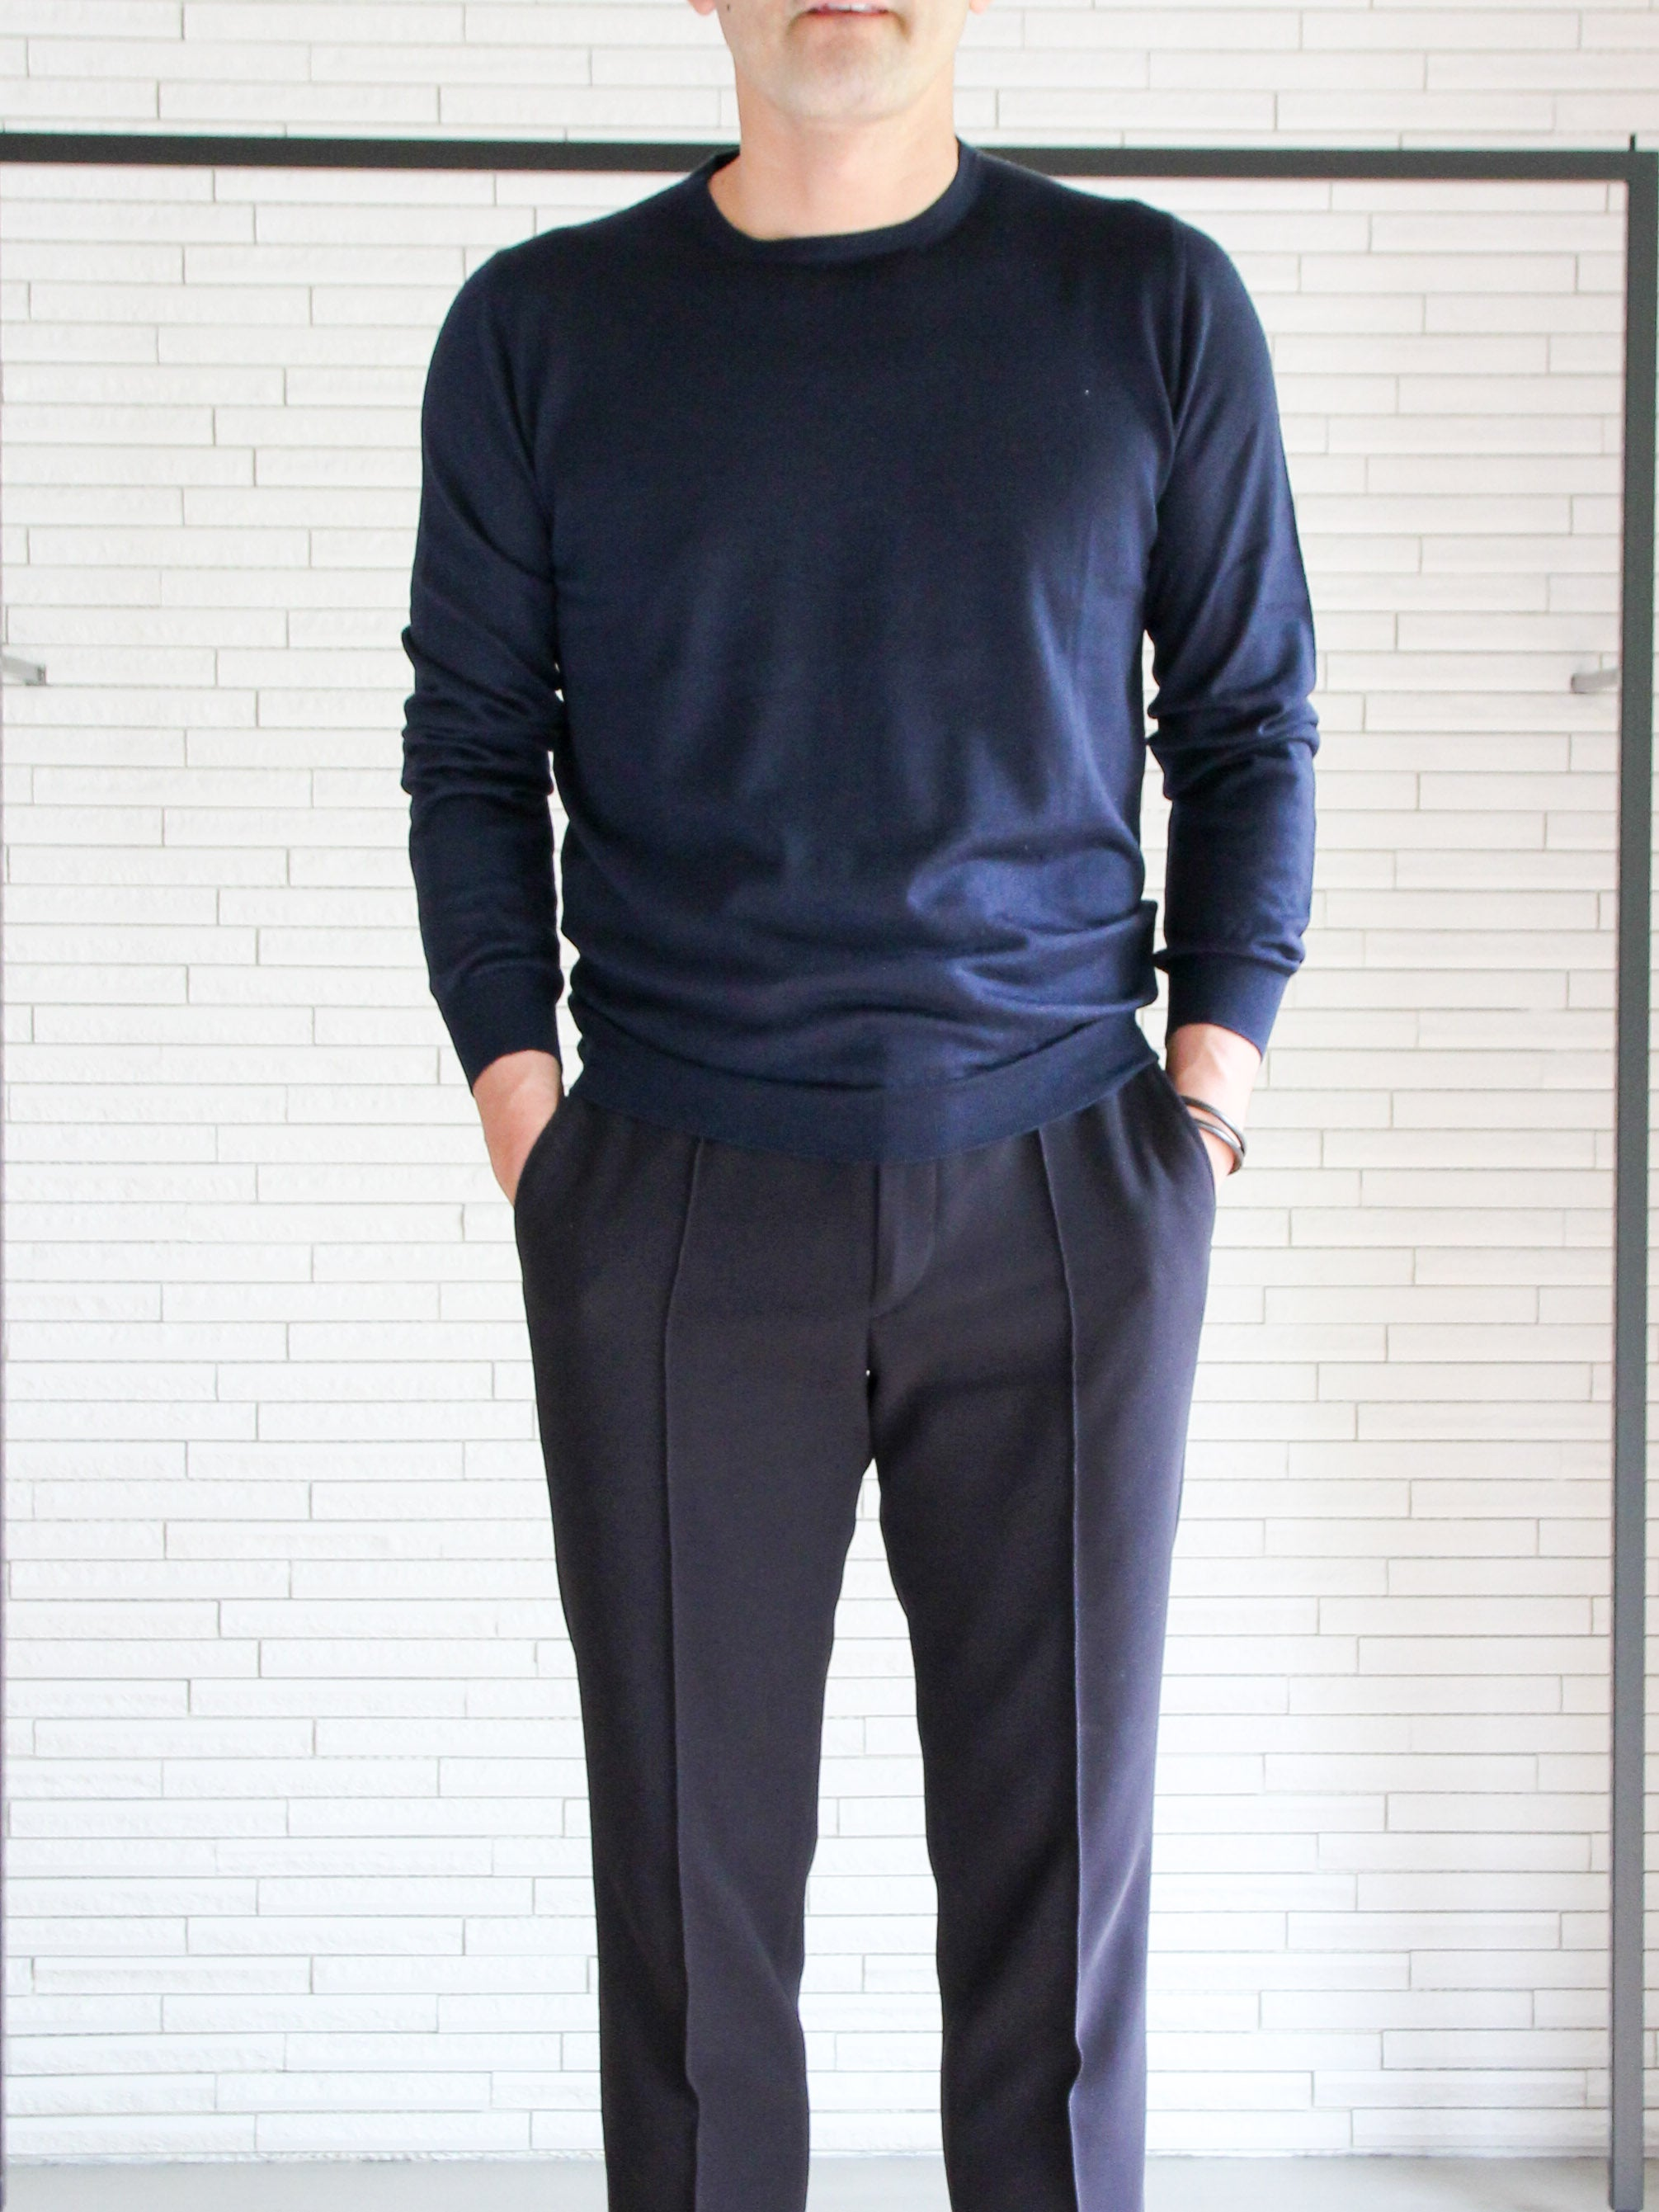 TM-503 / Cashmere Crew Neck Knit